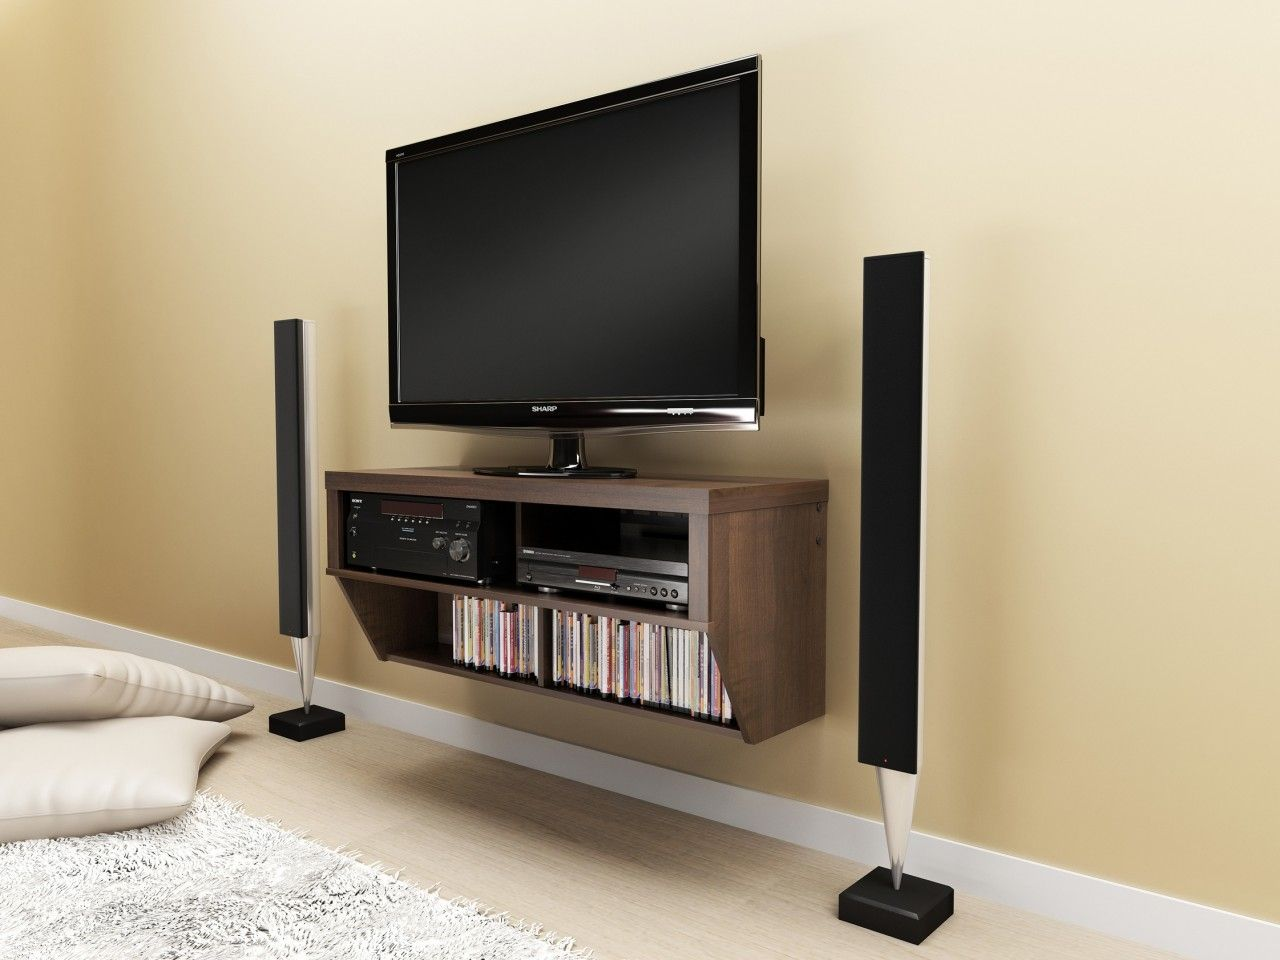 Creative Tv Wall Mounting Ideas Wall Mounted Media Console Wall